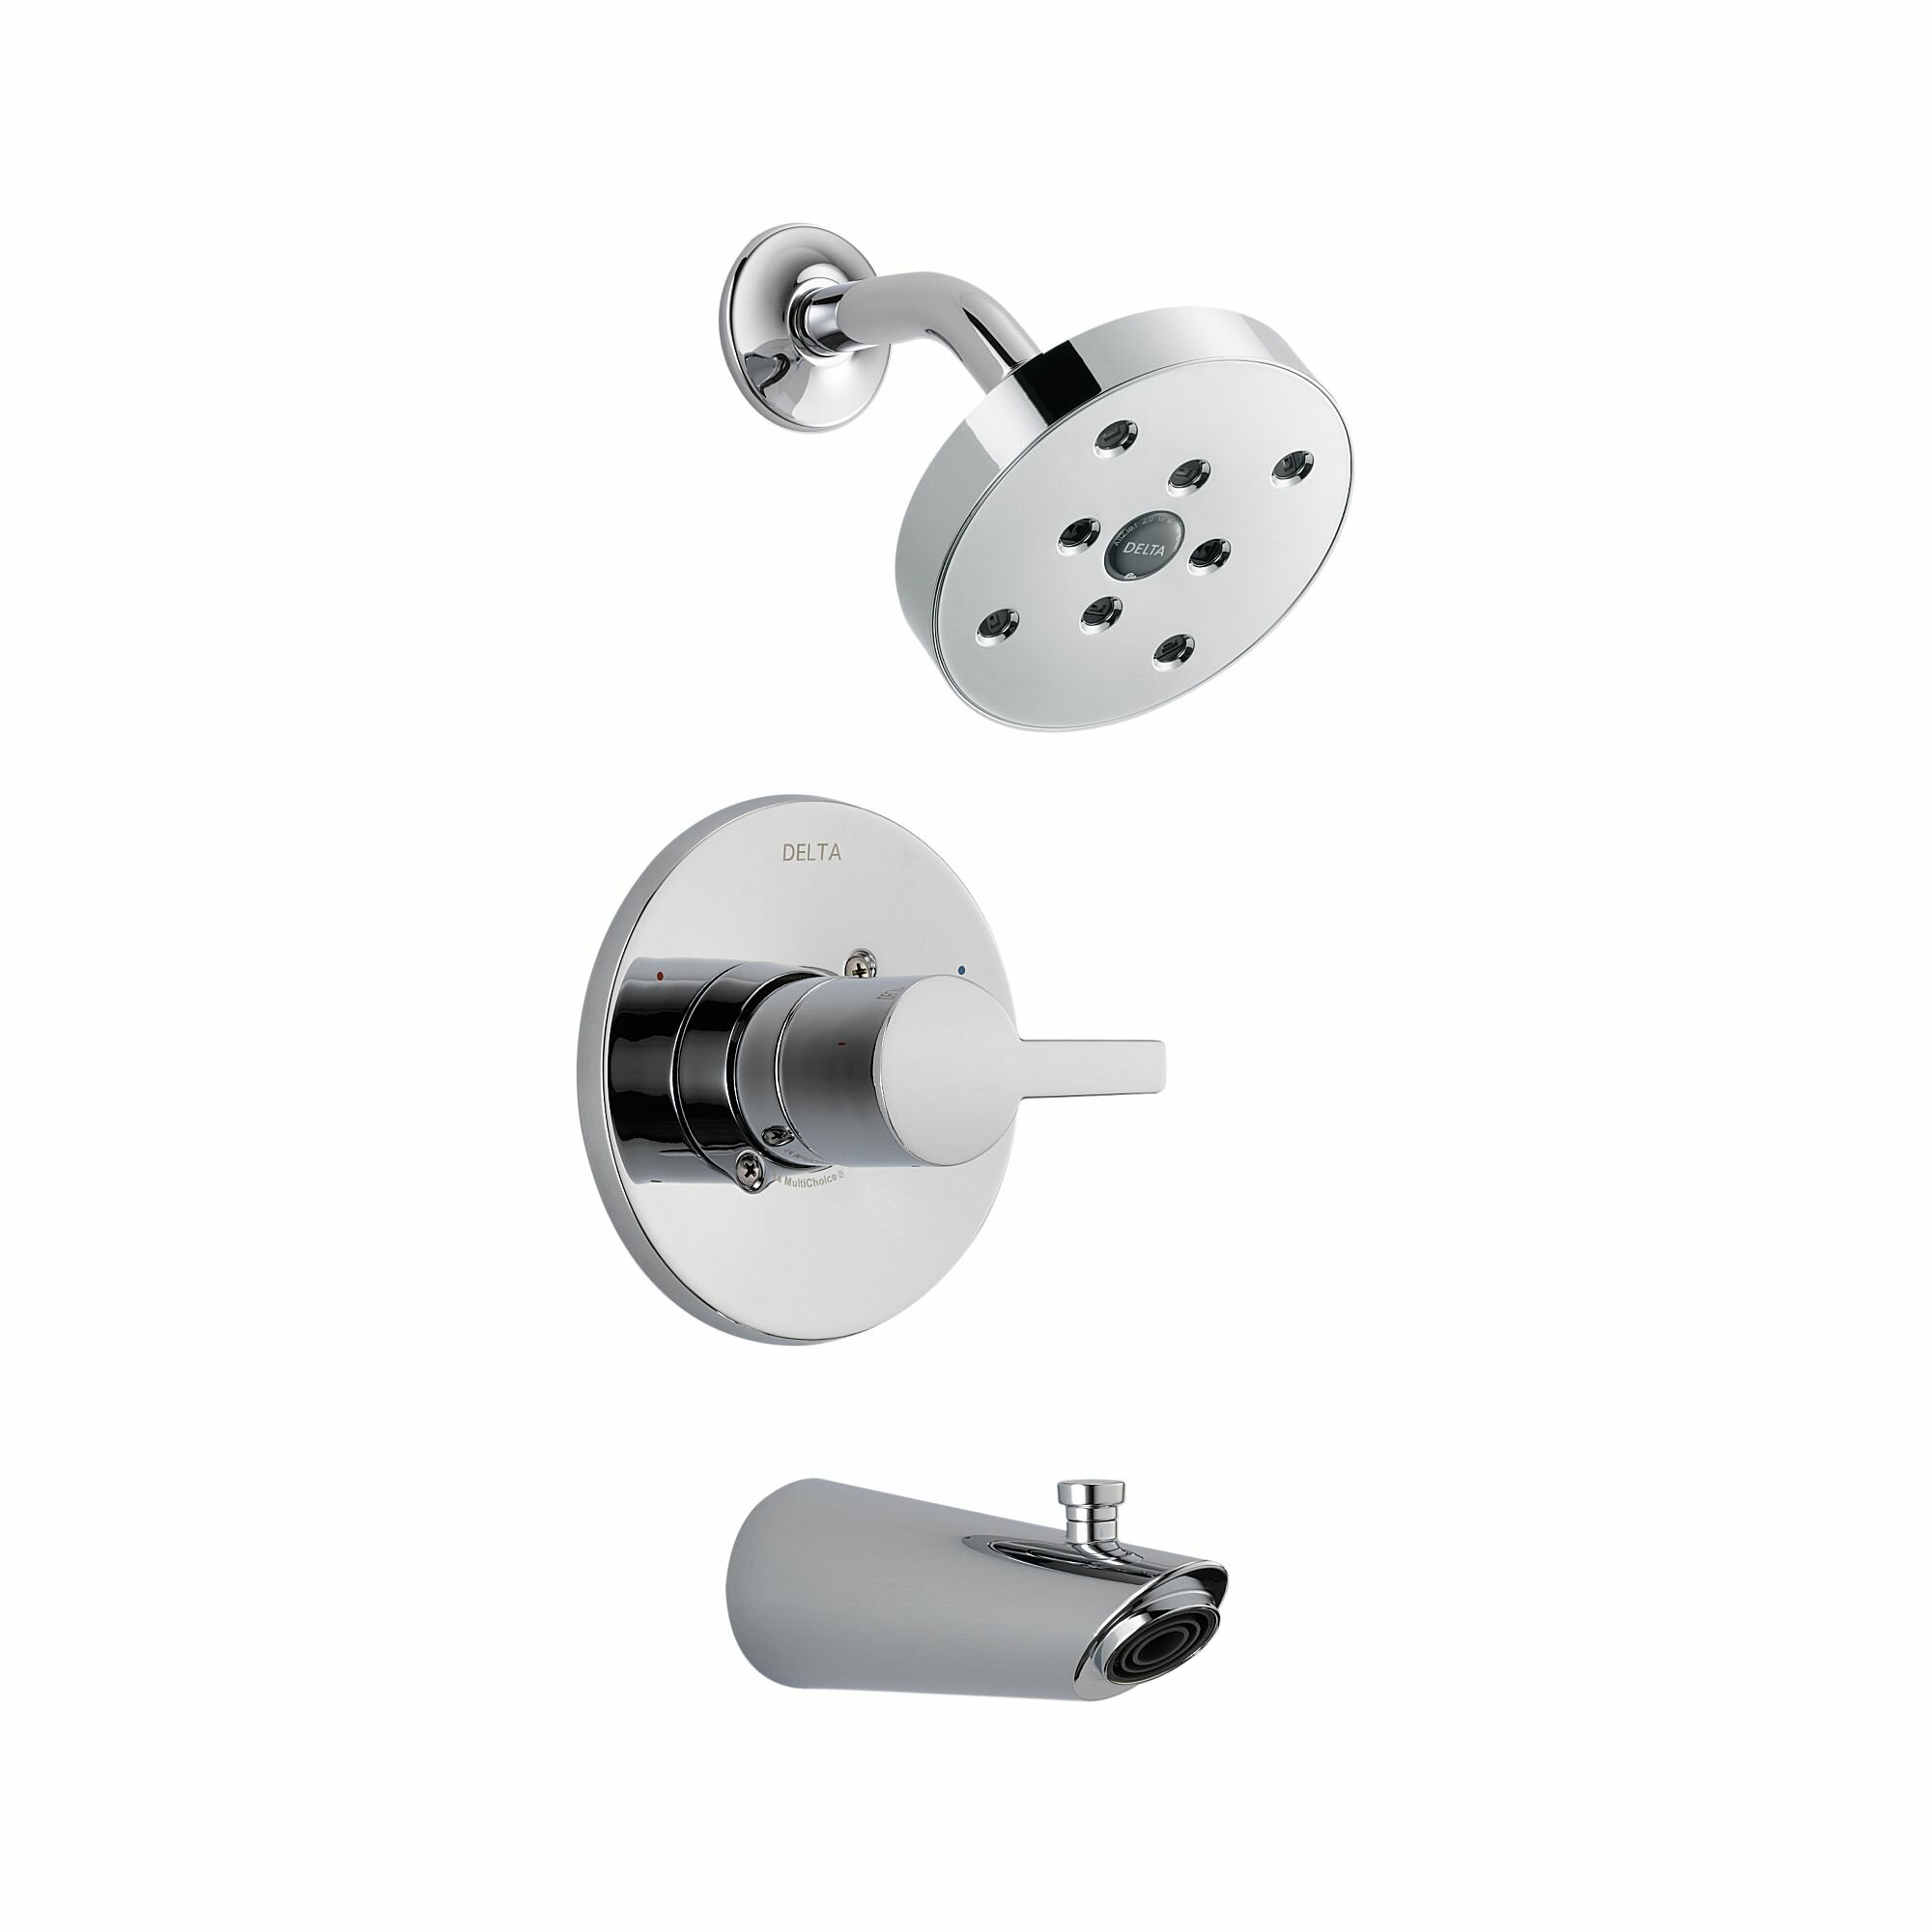 delta rough modern chrome tub spout spray valve handheld cartridge head finish hose lahara products package in and system with faucet bracket wall includes thermostatic shower